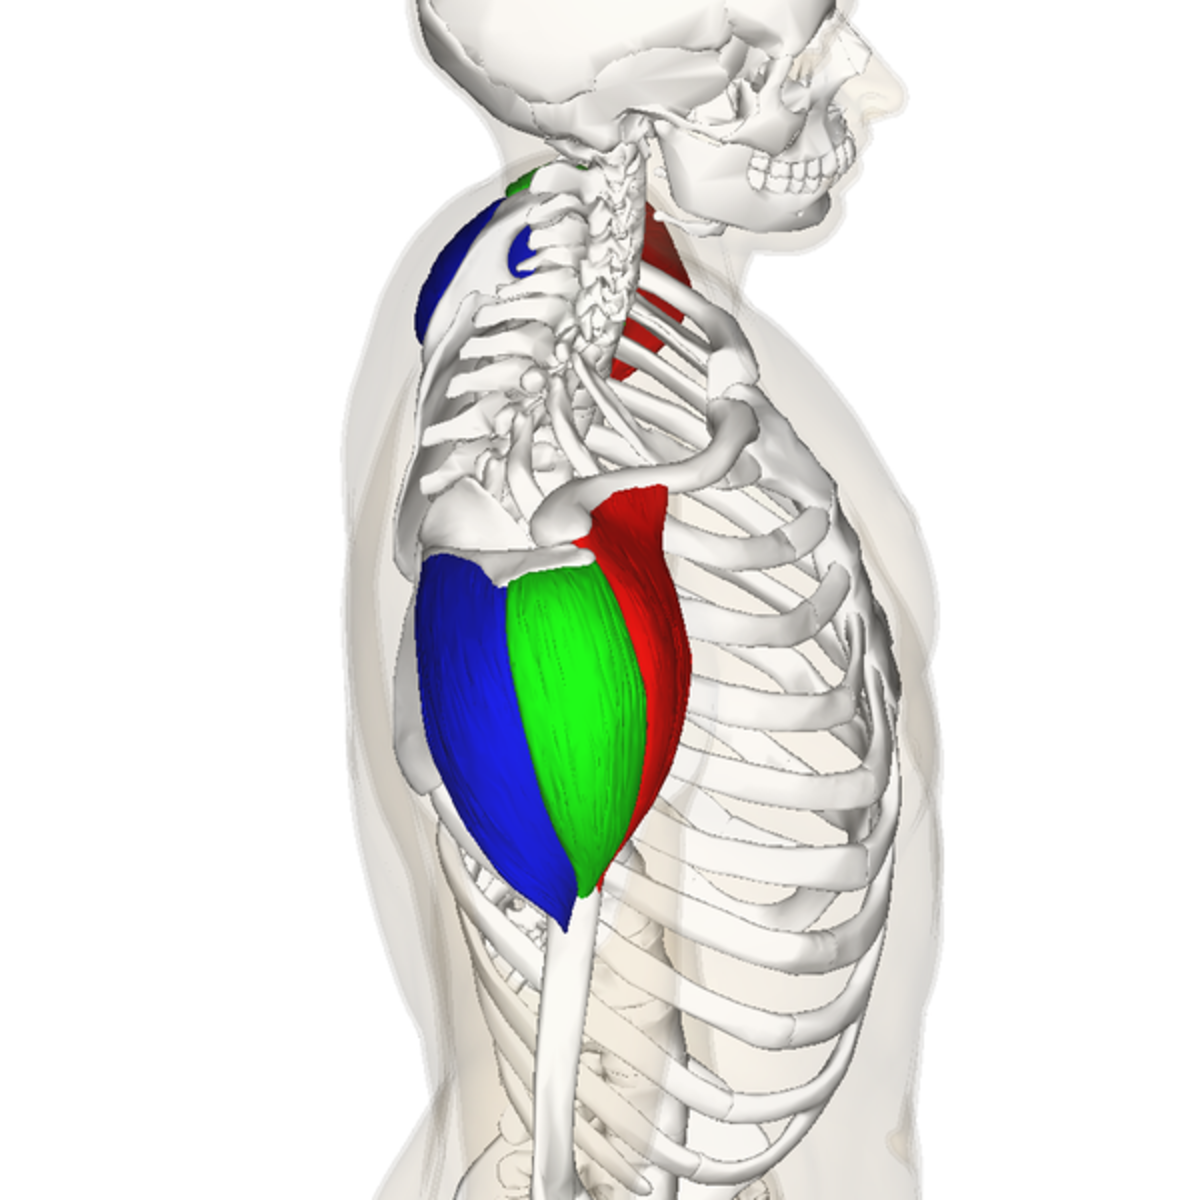 Diagram showing the three heads of the deltoid muscle. The posterior deltoid is blue, the lateral deltoid is green, and the anterior deltoid is red.